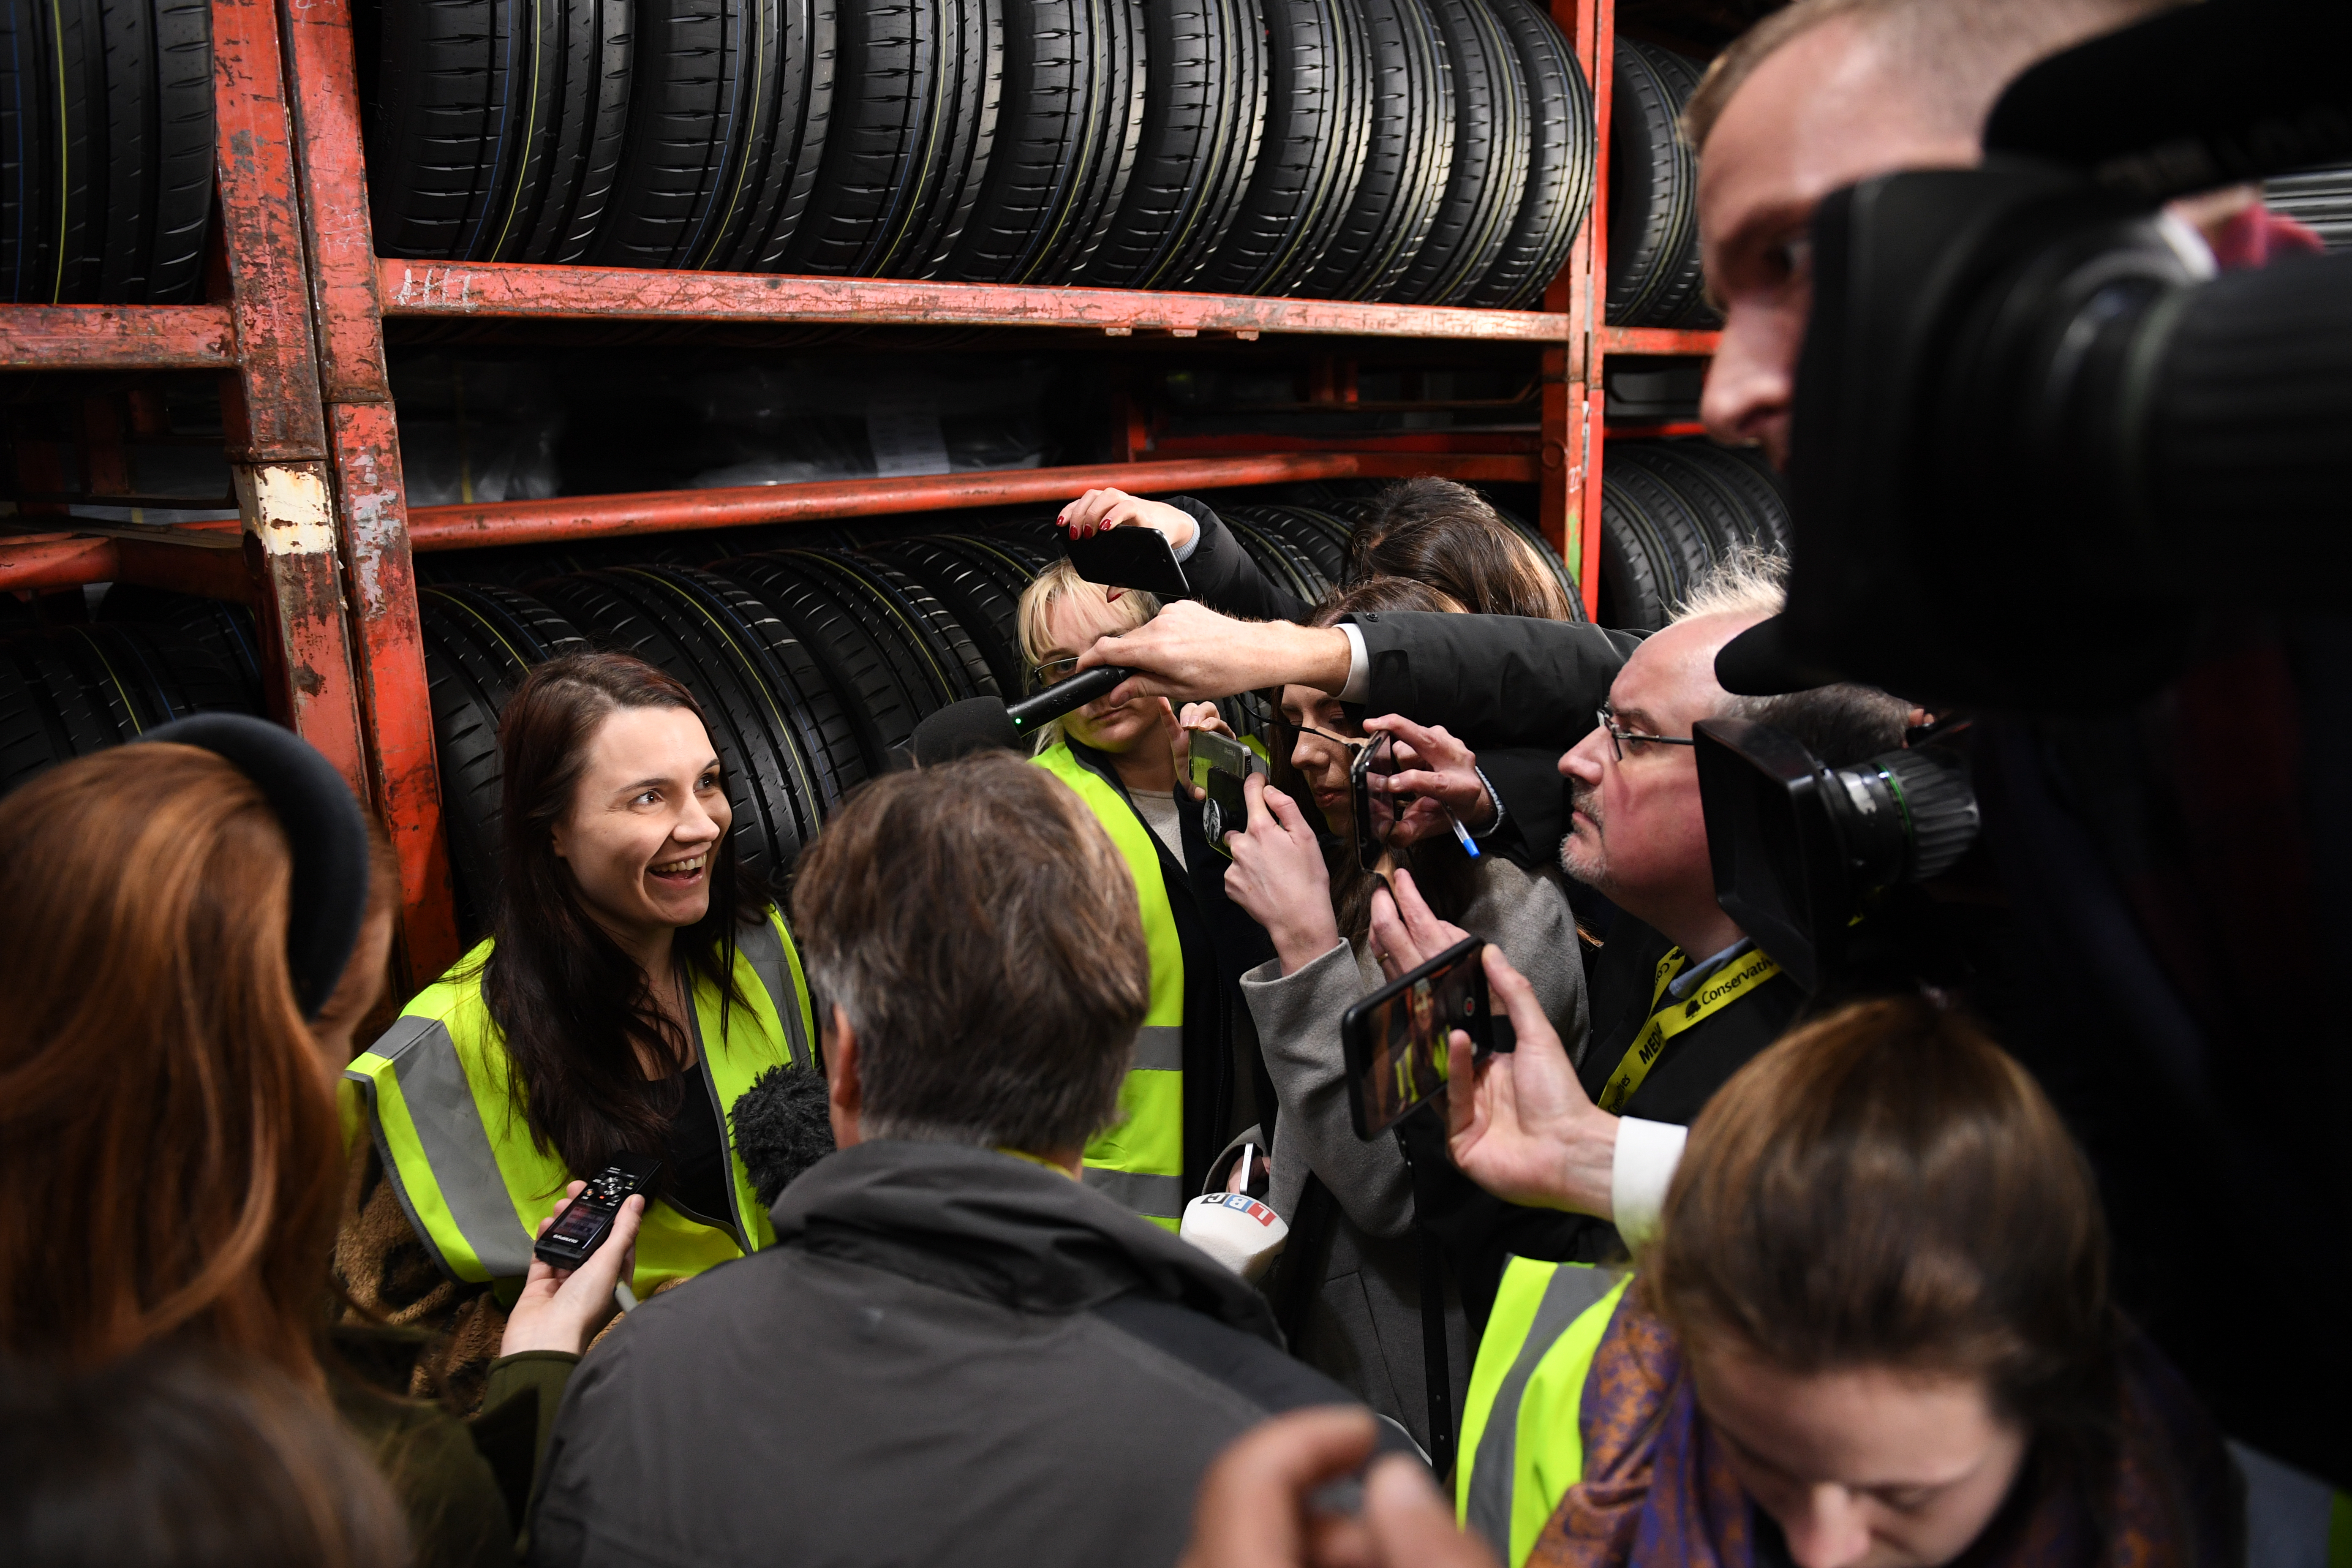 Company administrator Paige Hood, 25, is surrounded by media after she challenged Prime Minister Boris Johnson over the Tories� use of an attack website to make it harder for people to find the Labour manifesto on Google, during his visit to Fergusons Transport in Washington, Tyne & Wear, while on the General Election campaign trail.